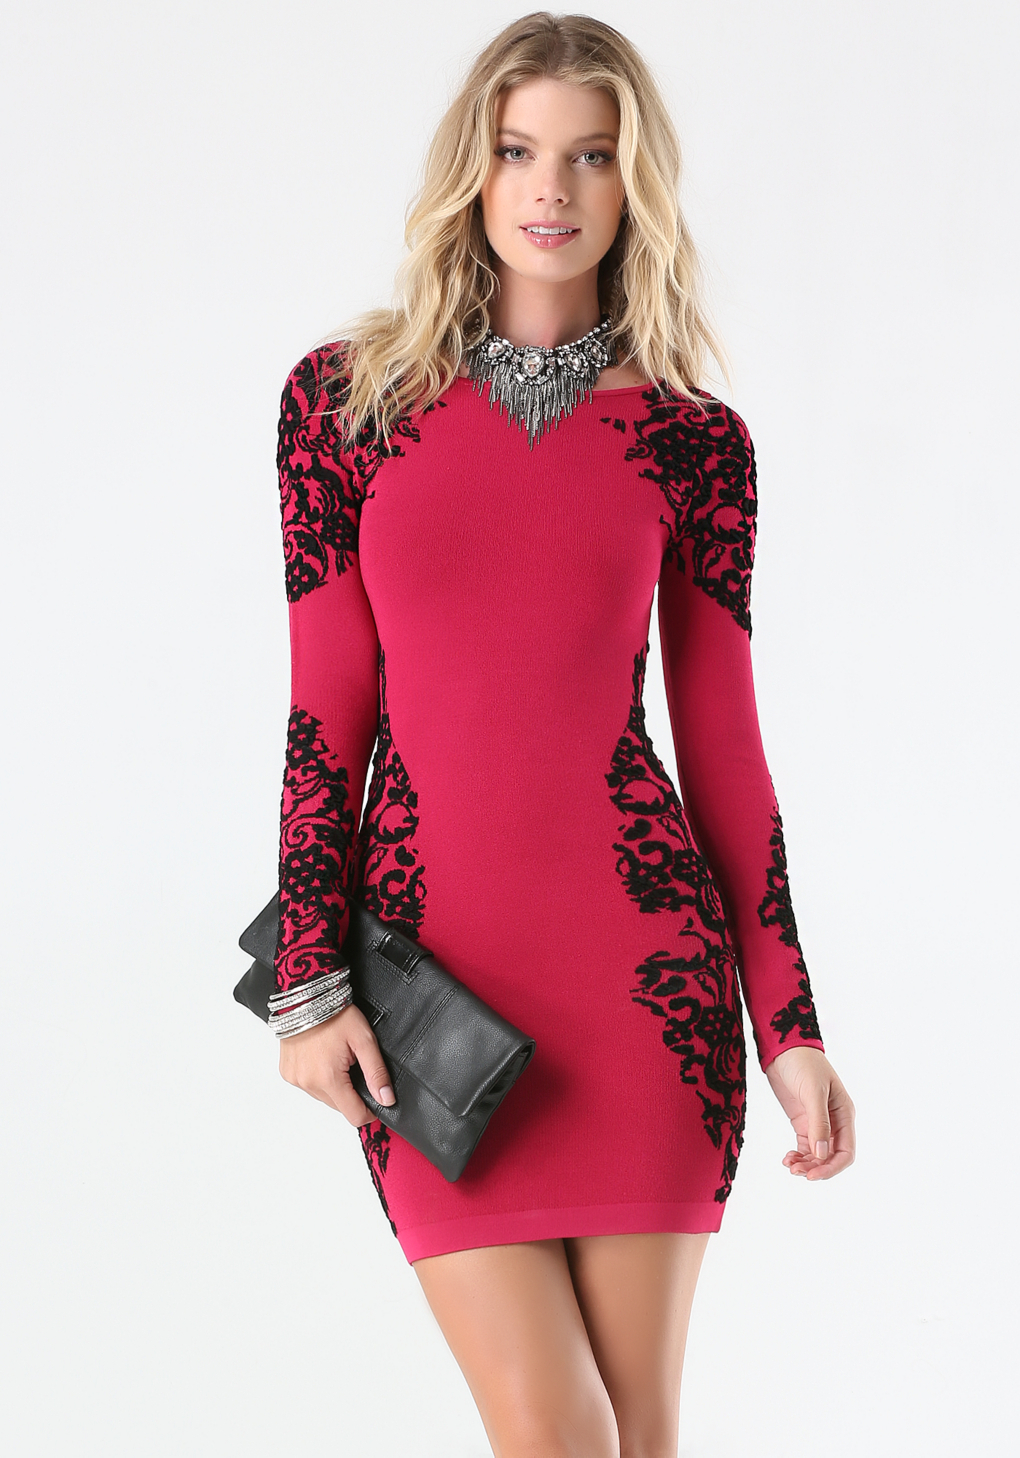 Bebe Jacquard Lace Sweater Dress in Red | Lyst